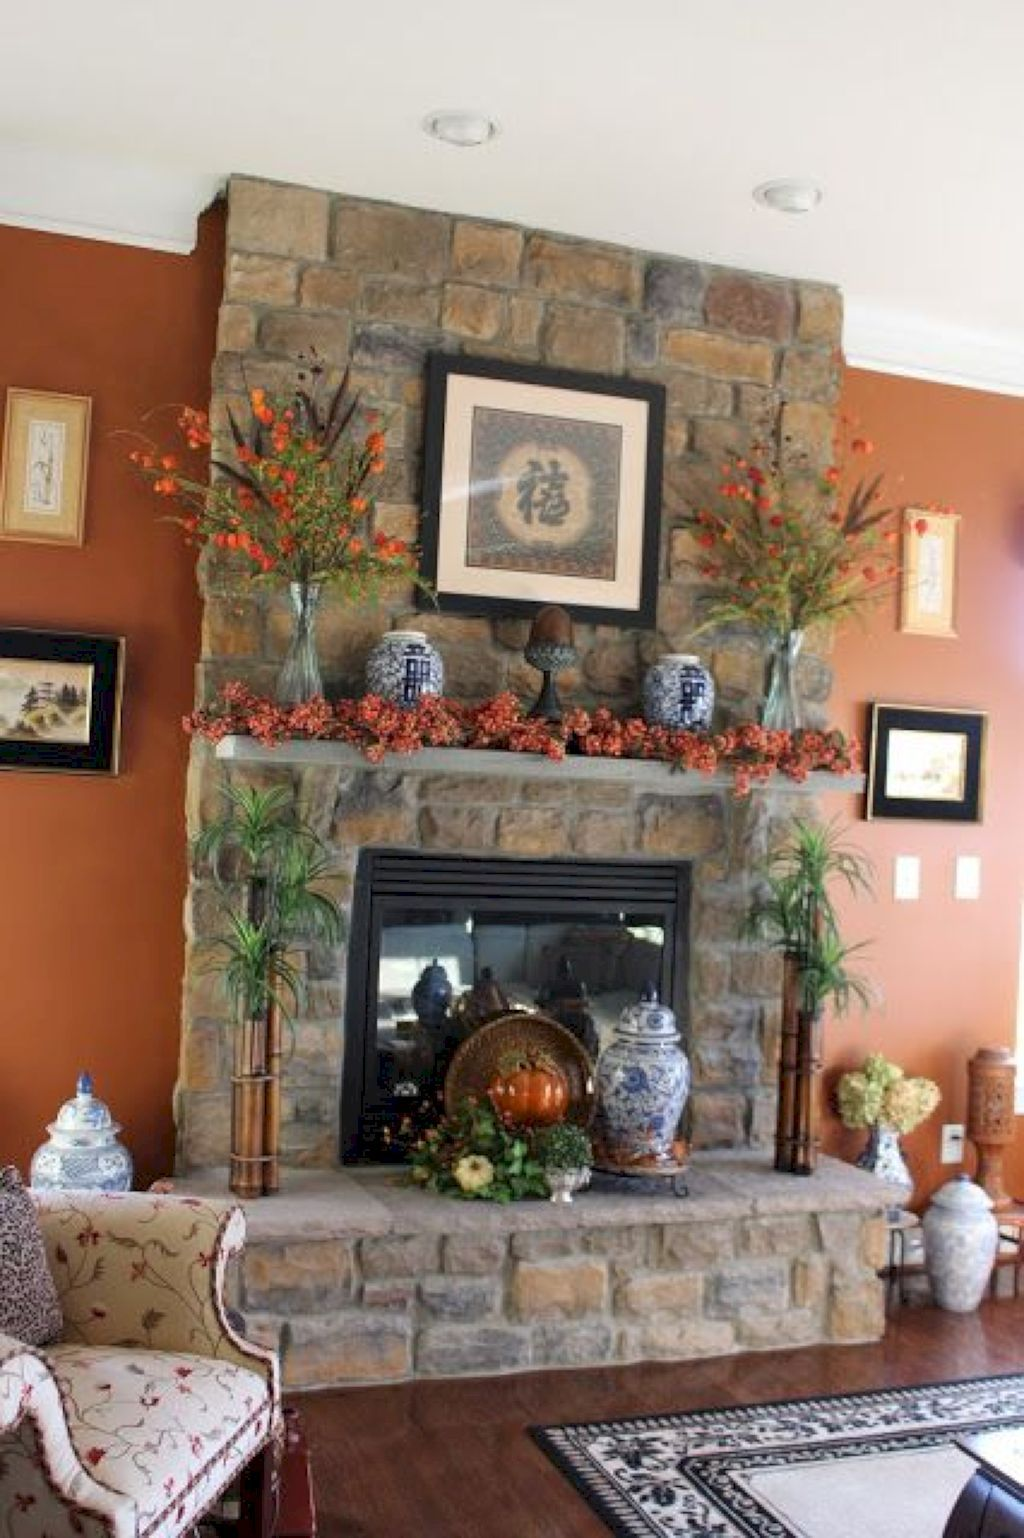 Cool 85 Awesome Fall Mantel Decor Ideas Https Homeideas Co 8745 85 Awesome Fall Mantel De Fireplace Mantle Decor Fall Fireplace Decor Fall Mantel Decorations